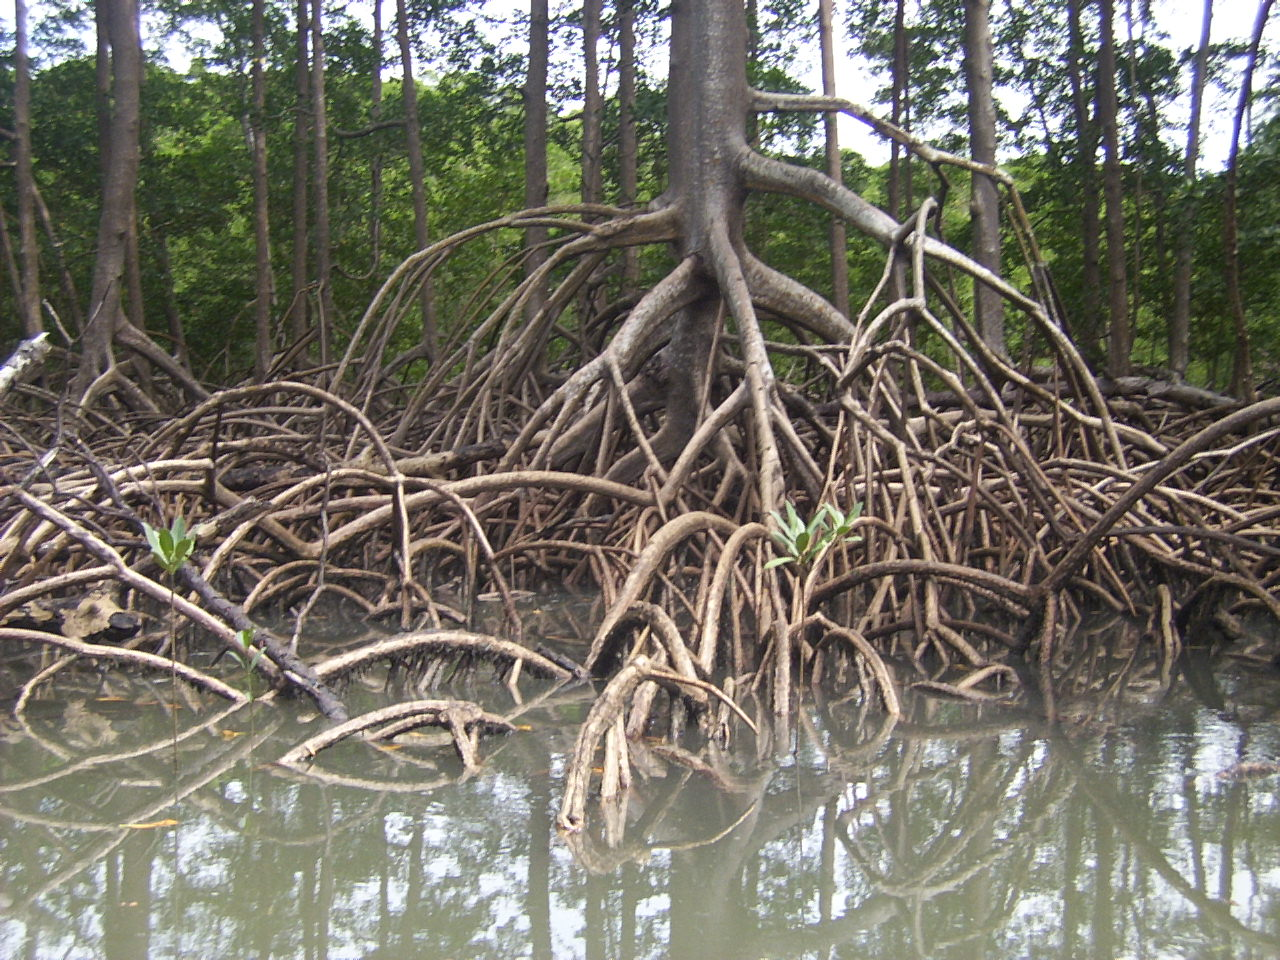 Mangroves and their role to ecology